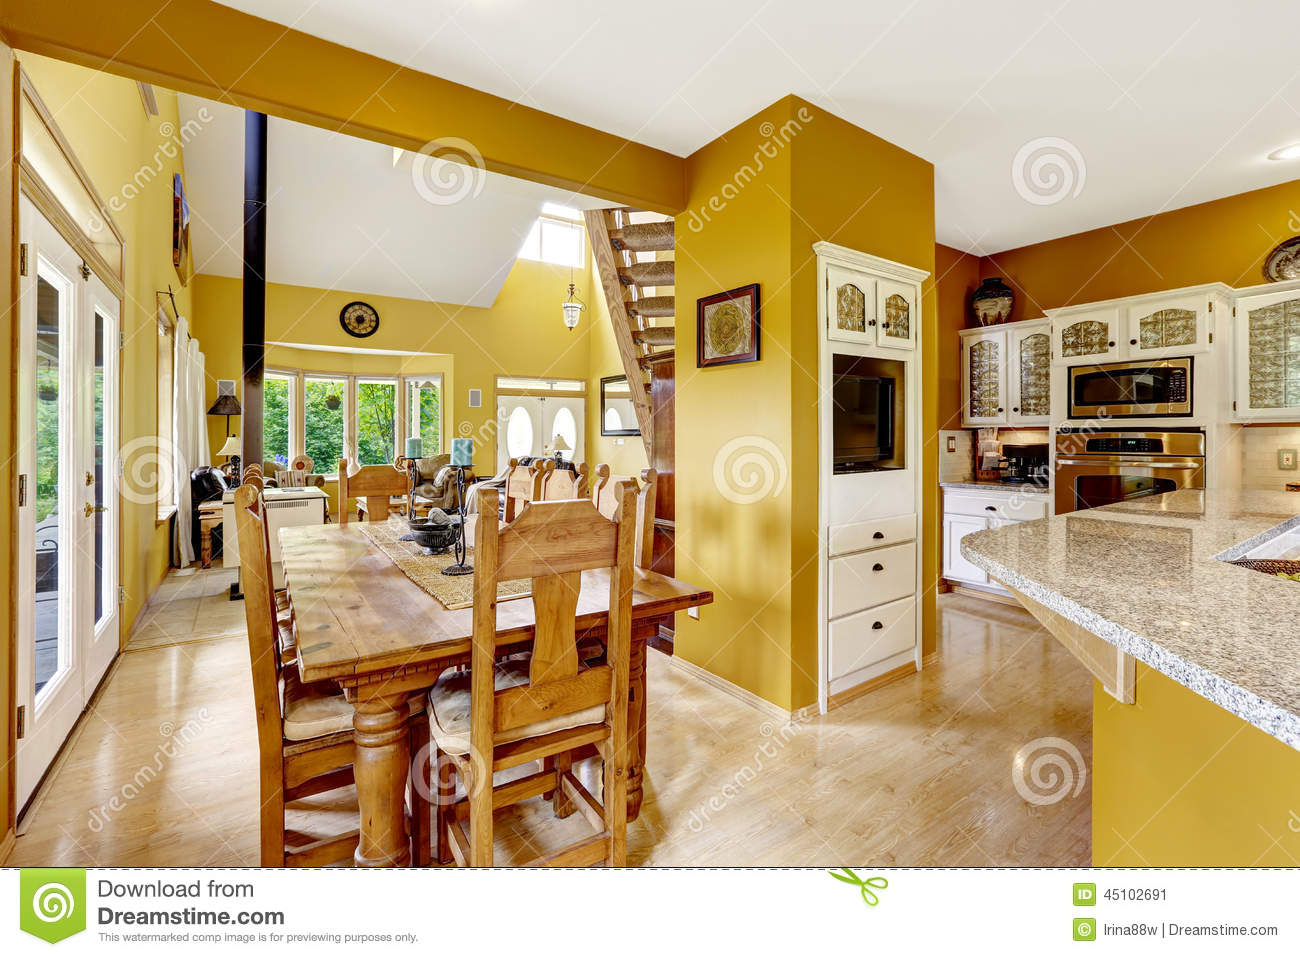 Beautiful farm house interior in bright yellow color wooden dining